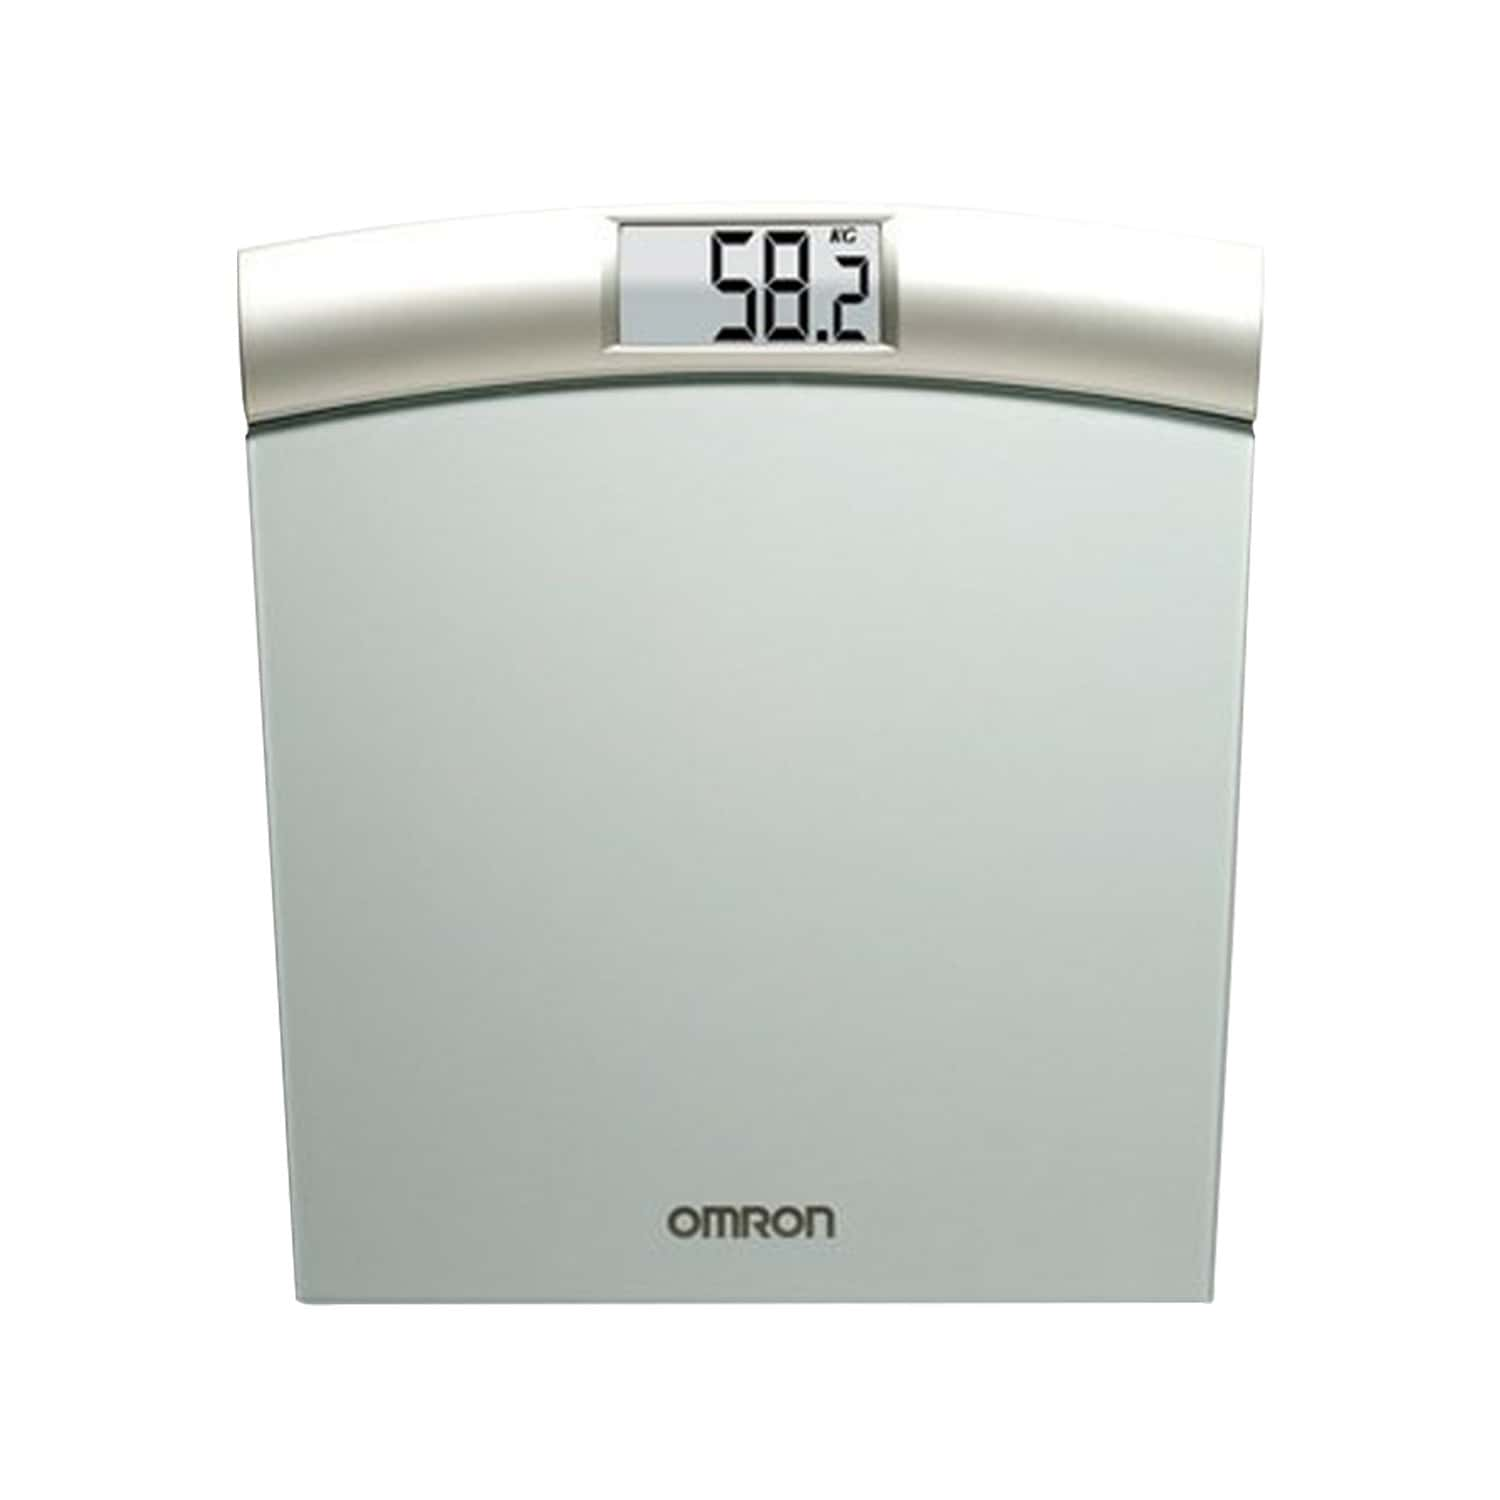 Omron Hn-283-in Weighing Scale